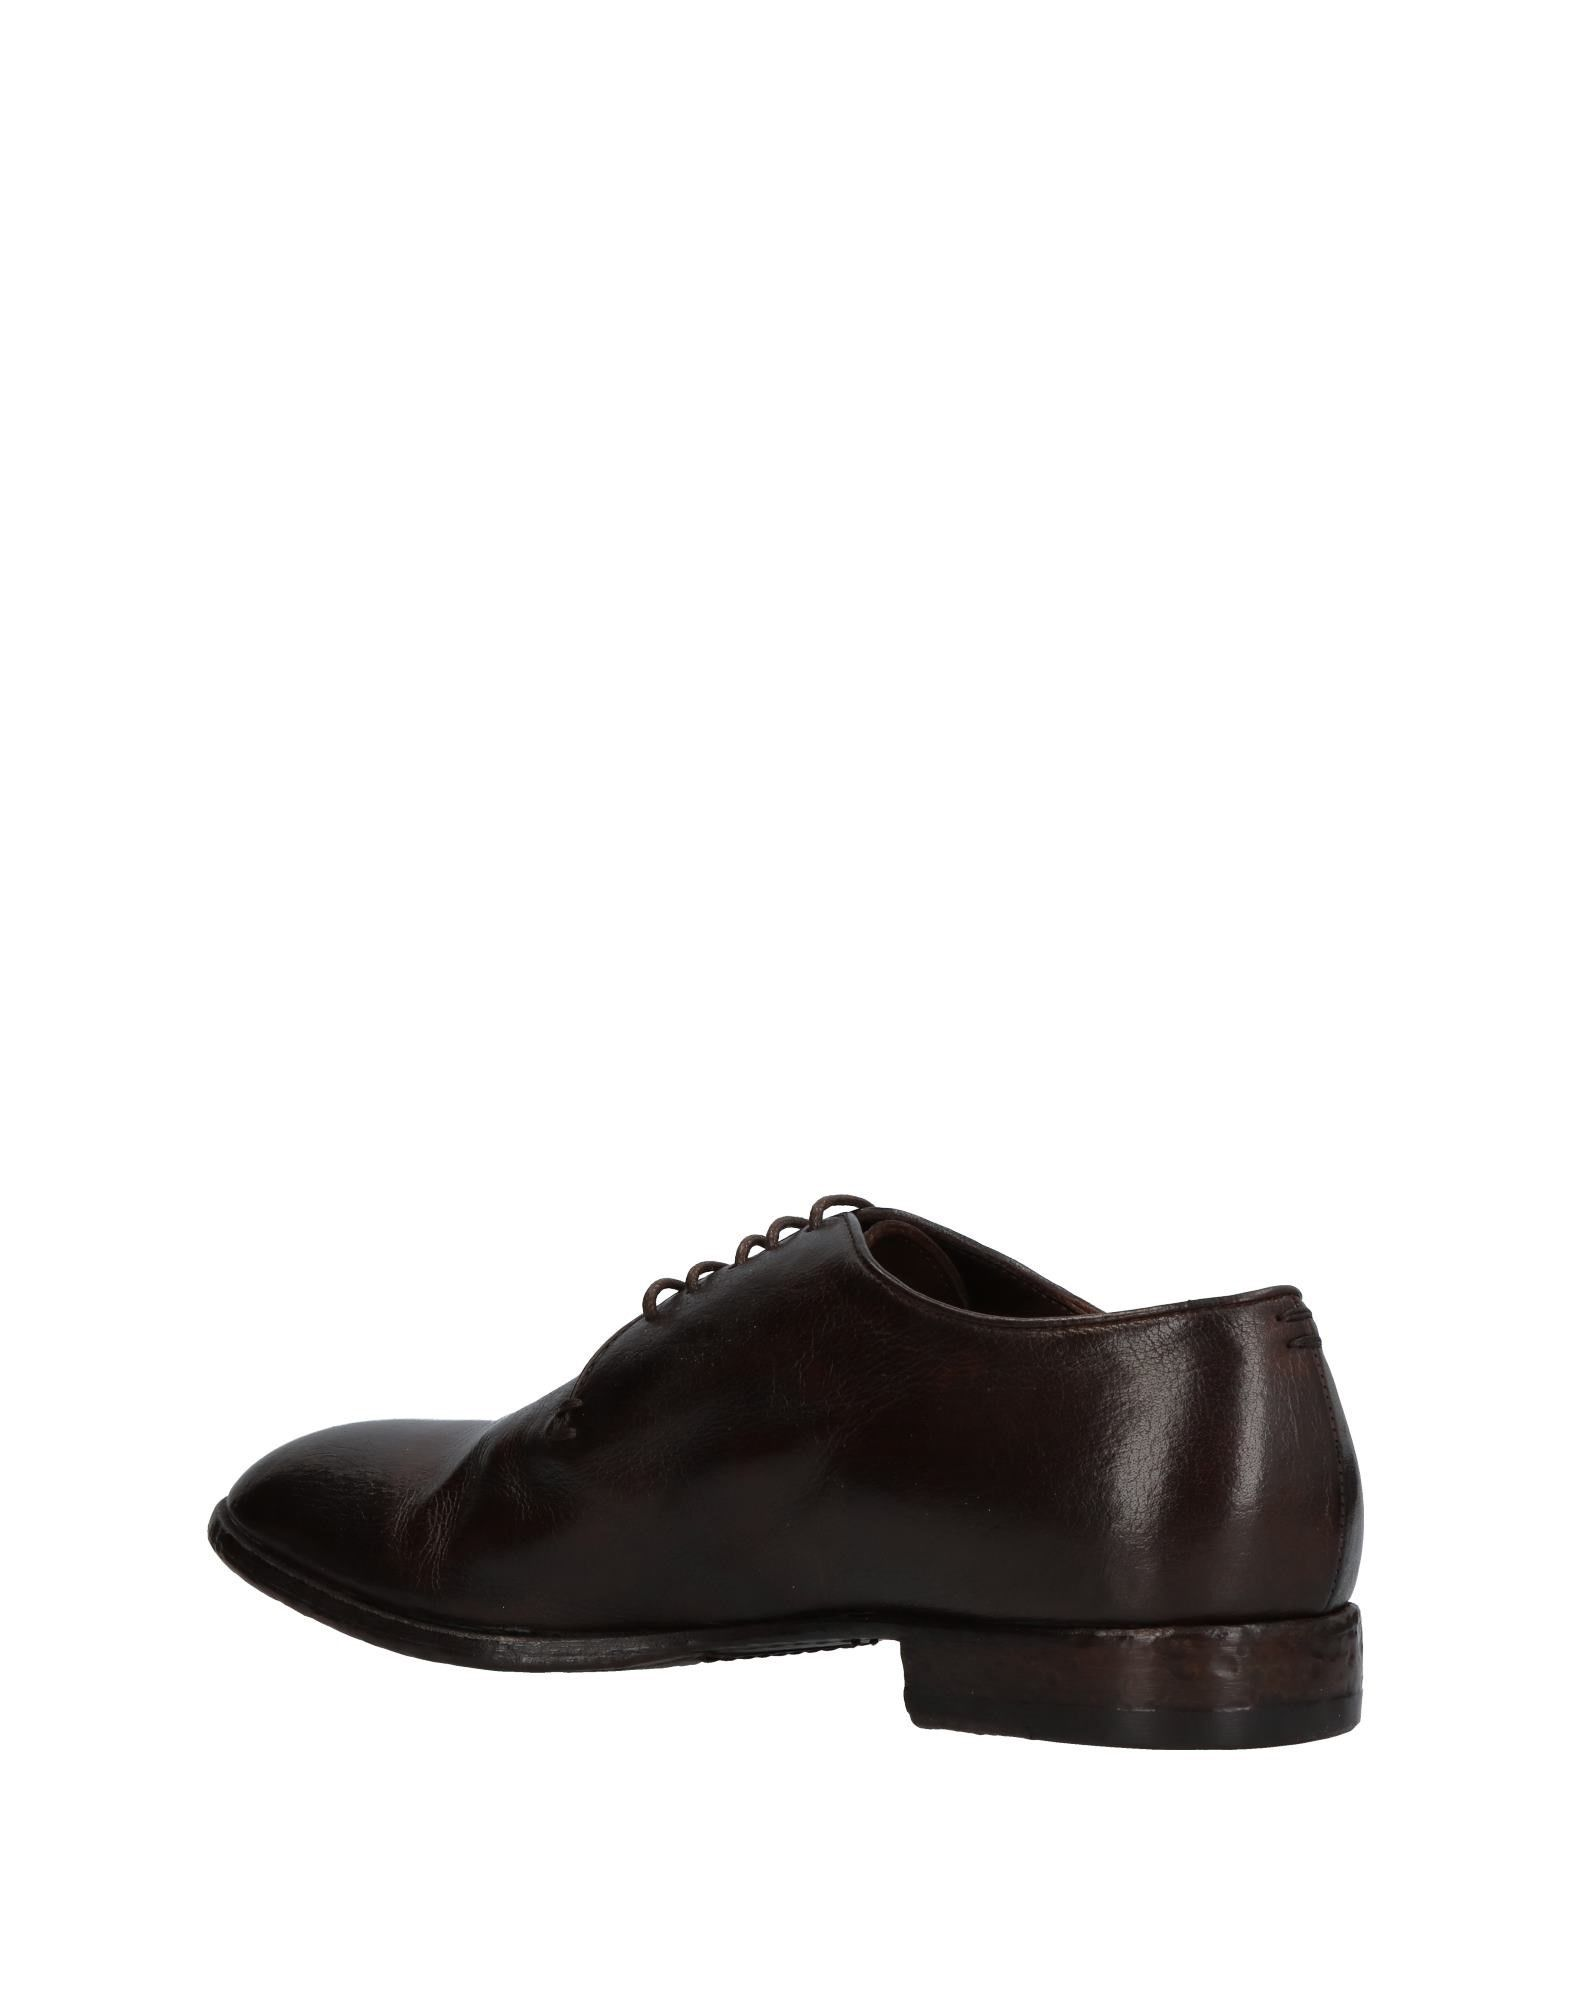 Chaussures - Chaussures À Lacets Openclosedshoes ymlIdbIs